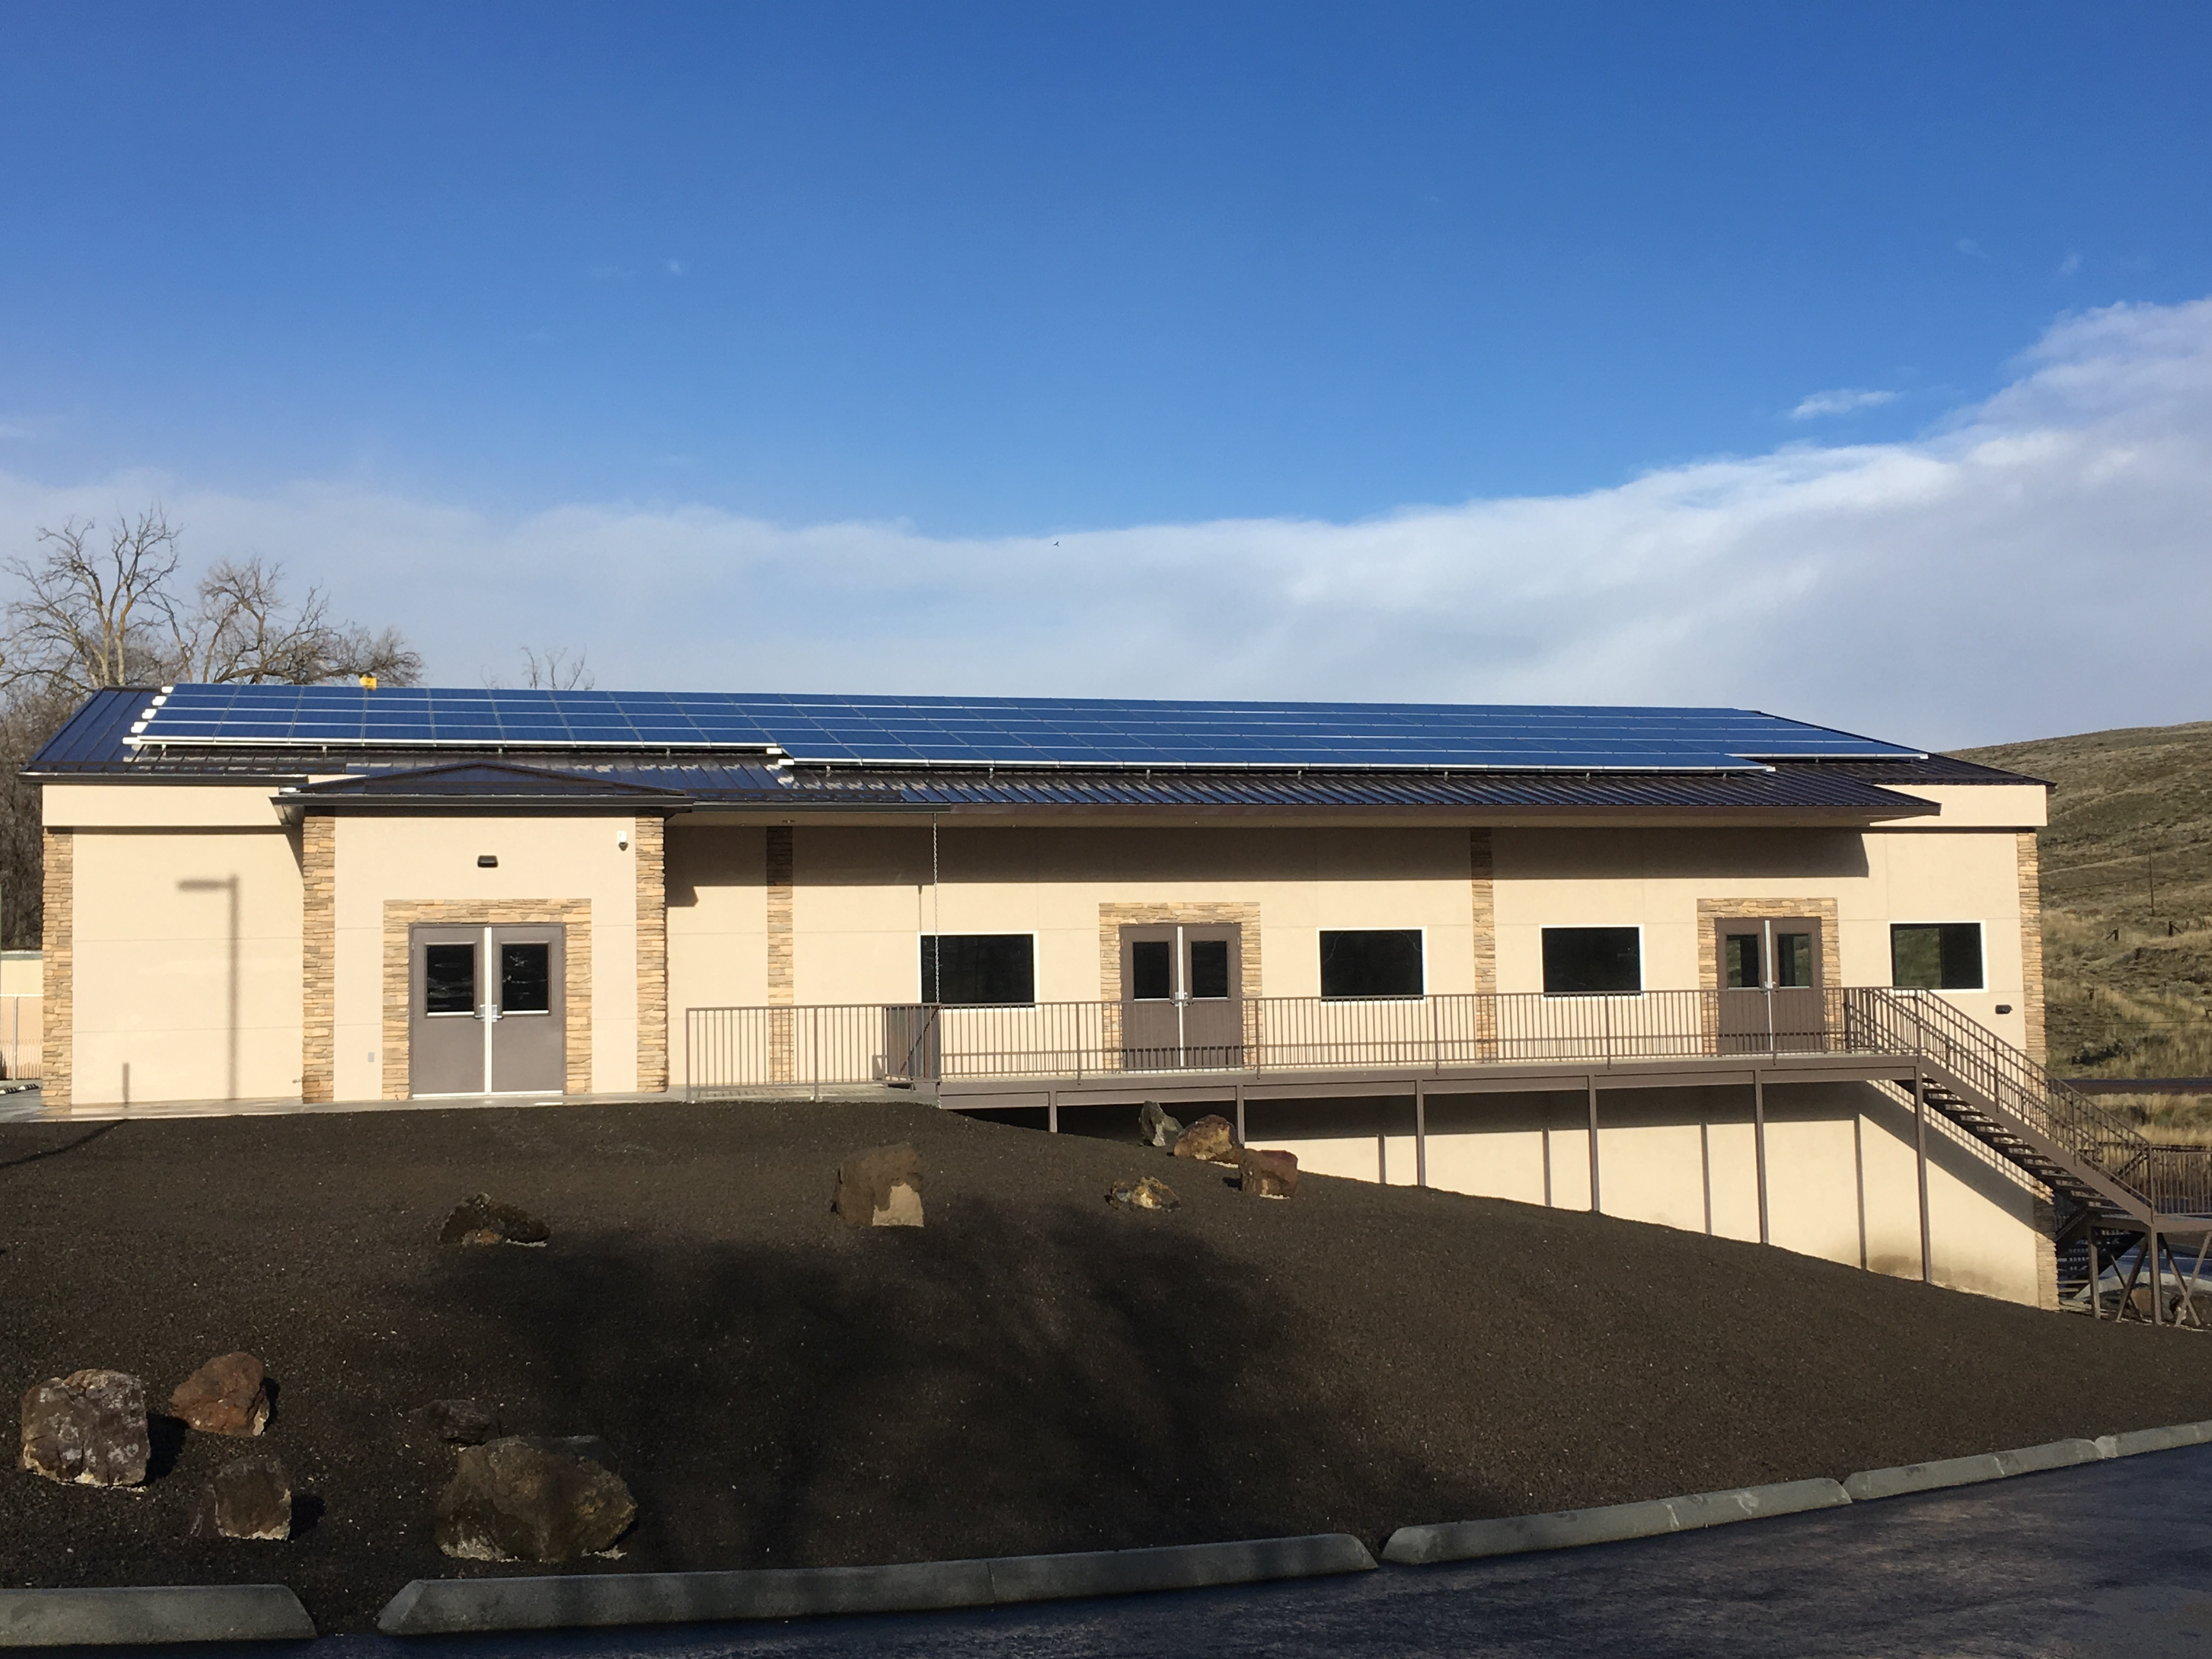 33kW Community Center, Arlington, OR